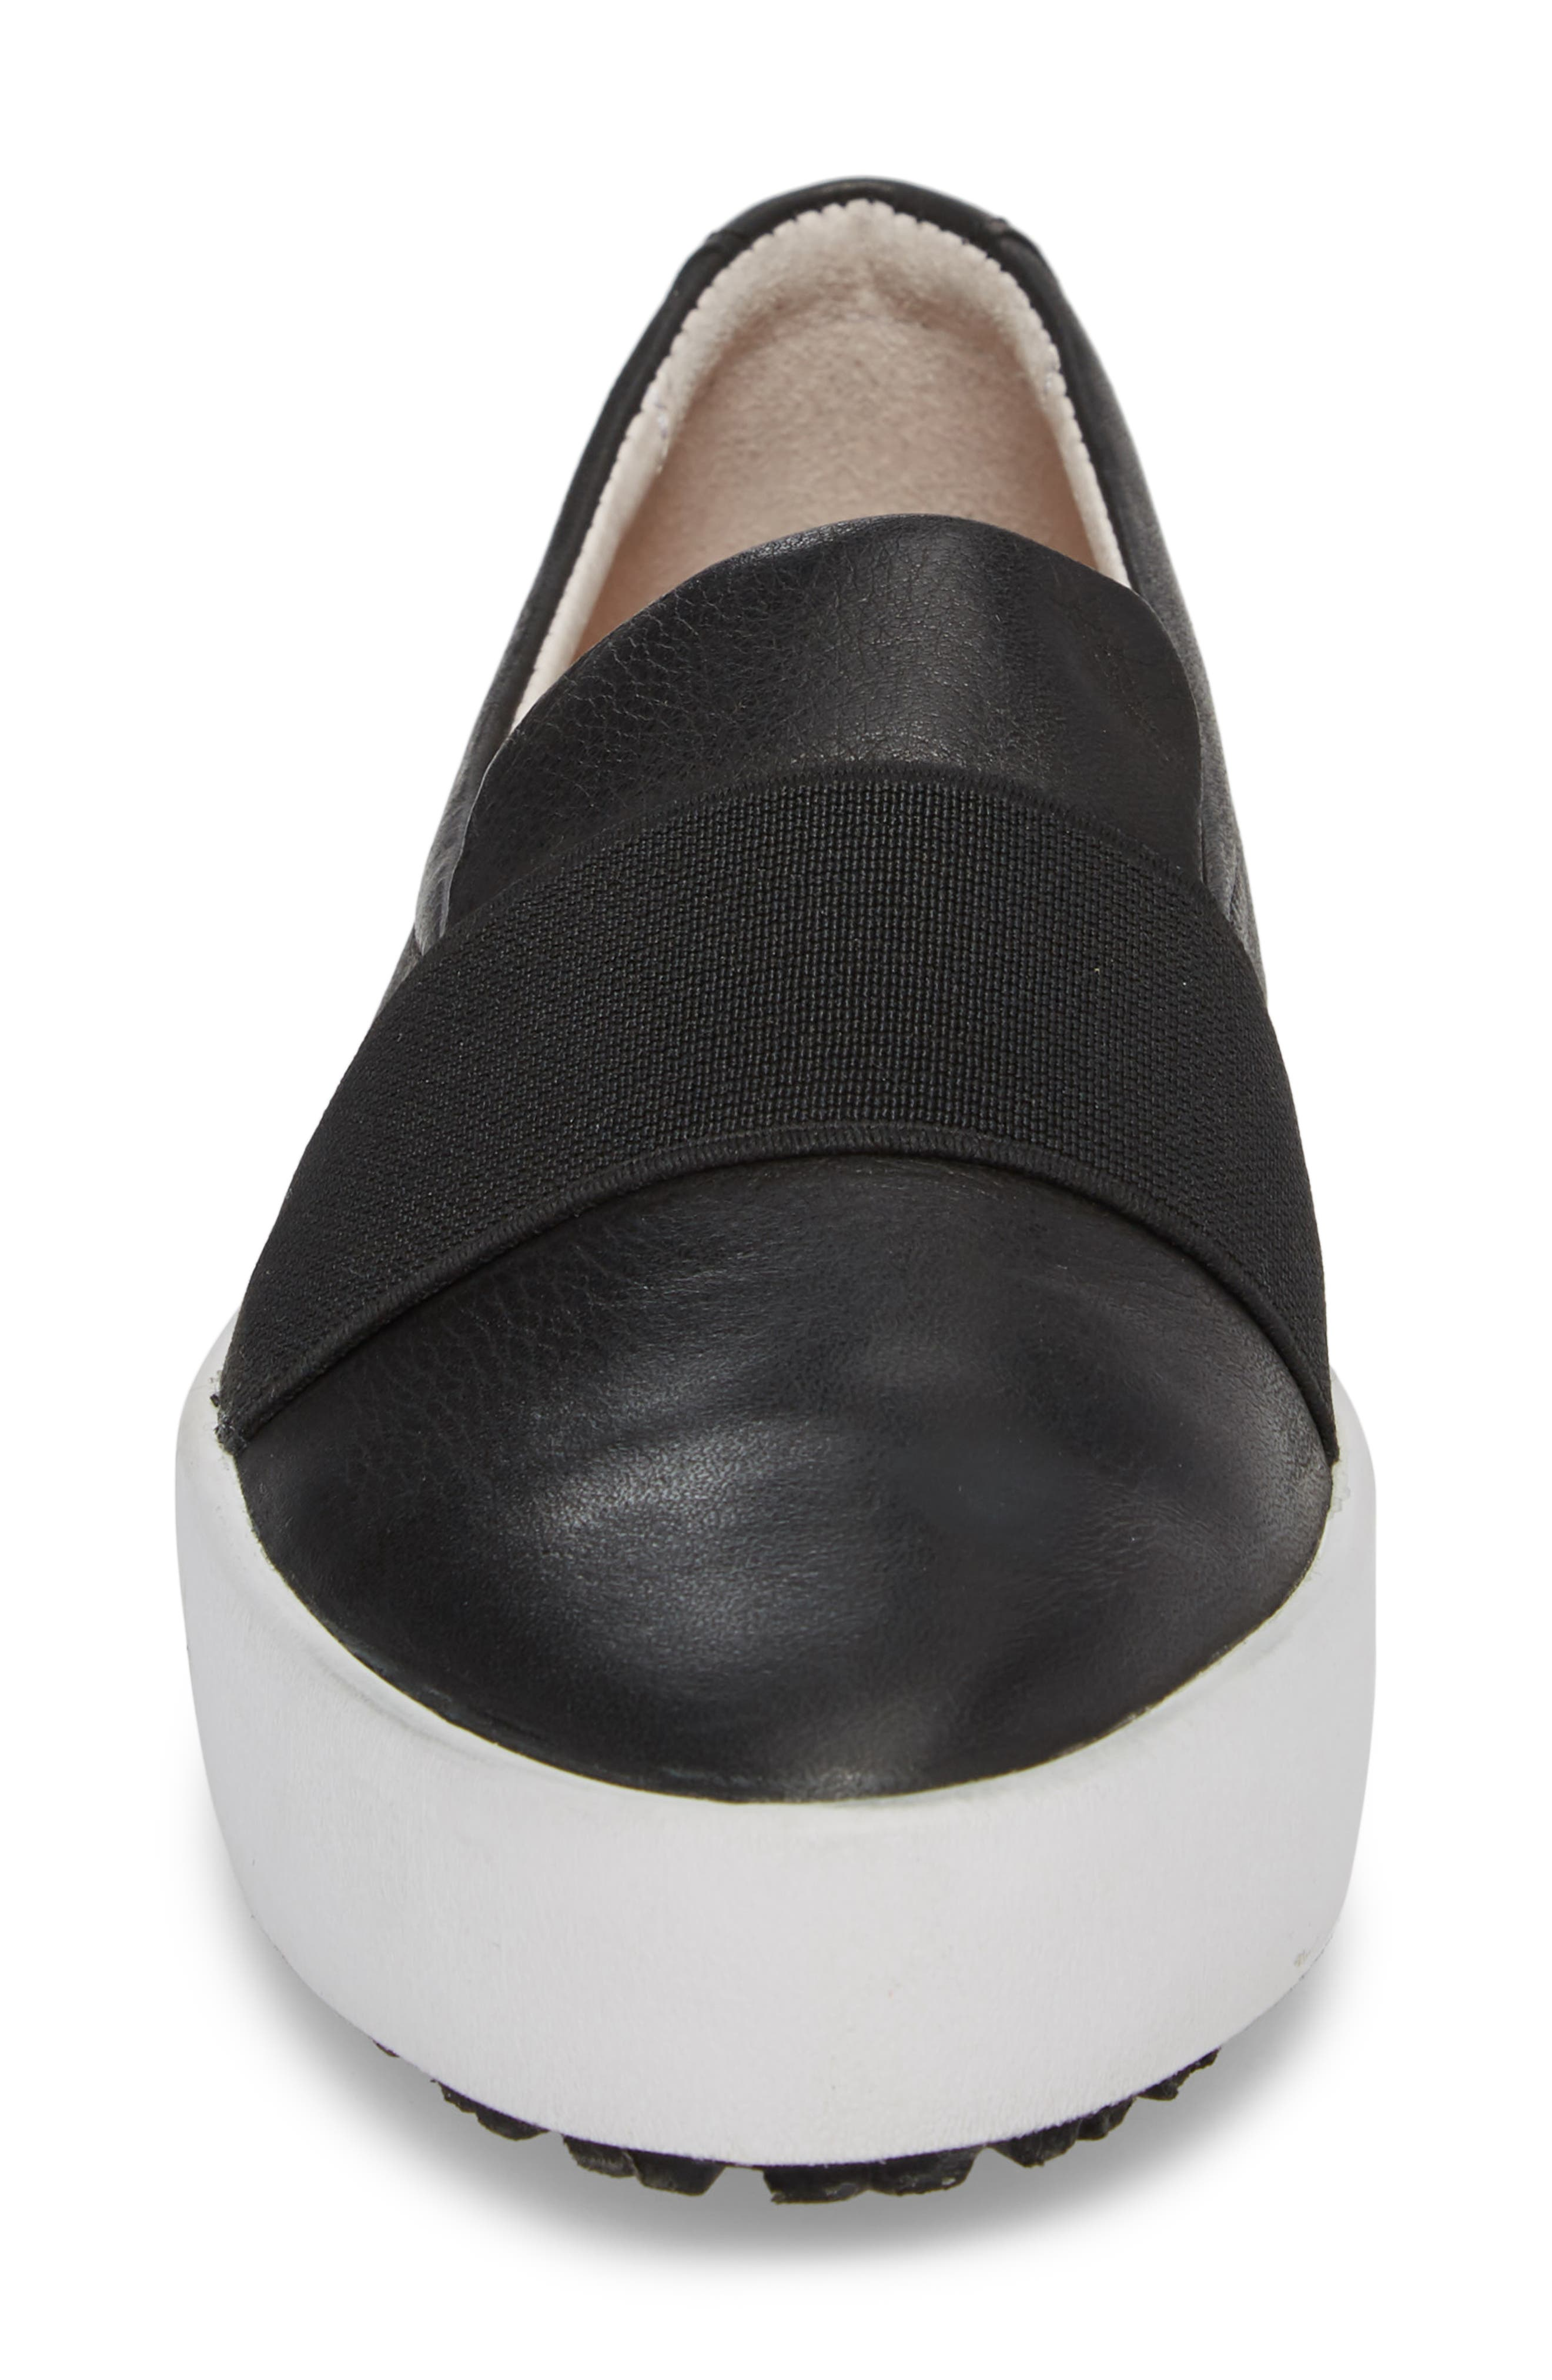 PL99 Slip-On Sneaker,                             Alternate thumbnail 4, color,                             BLACK LEATHER